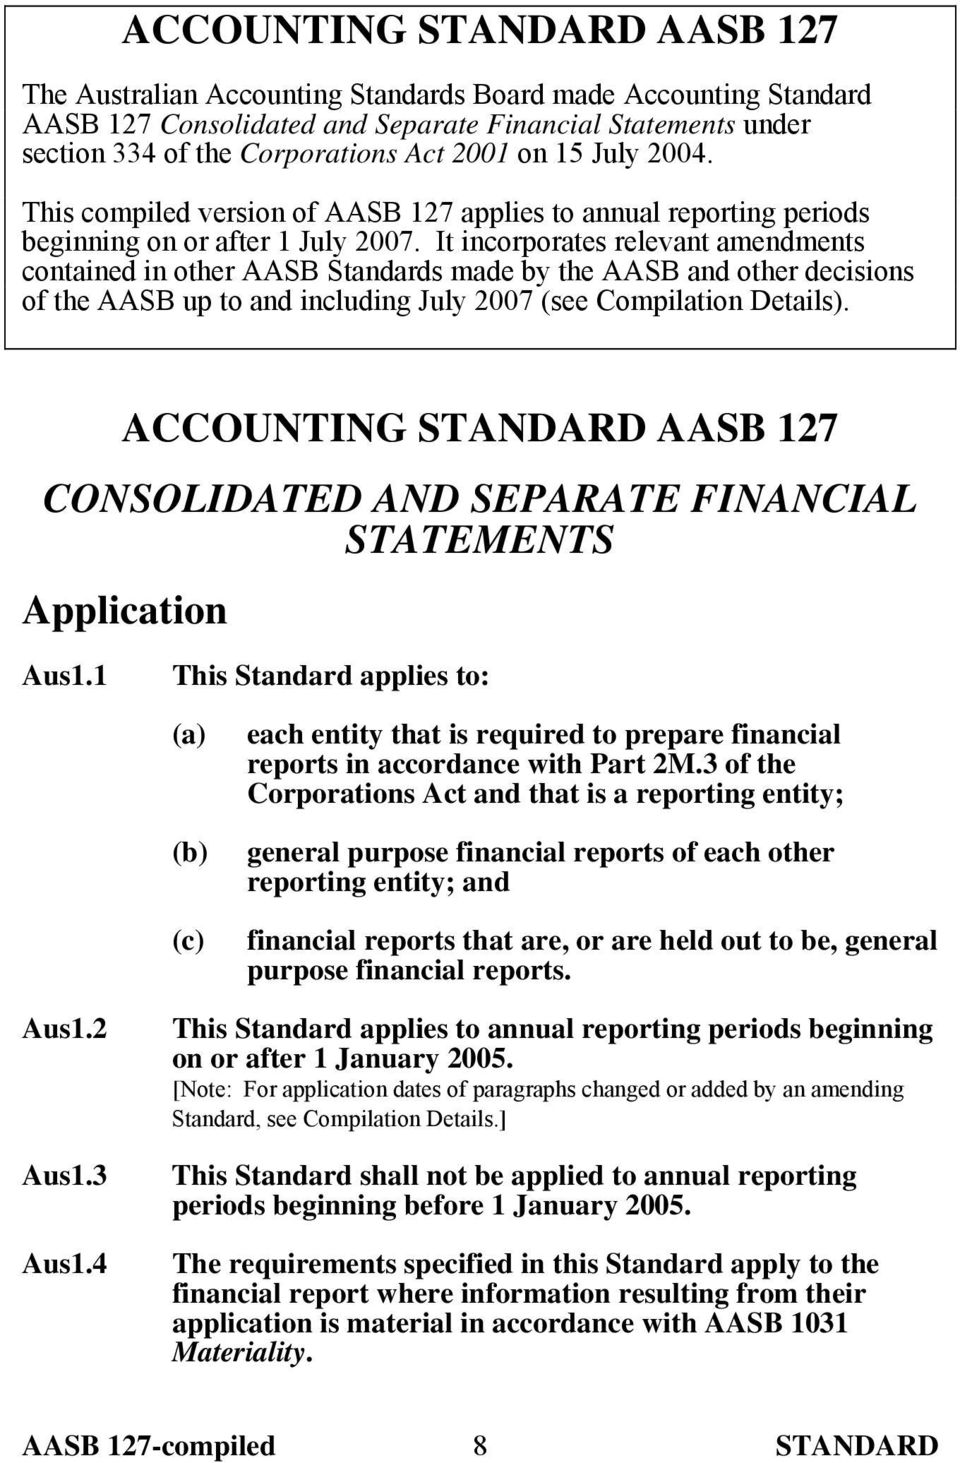 It incorporates relevant amendments contained in other AASB Standards made by the AASB and other decisions of the AASB up to and including July 2007 (see Compilation Details).